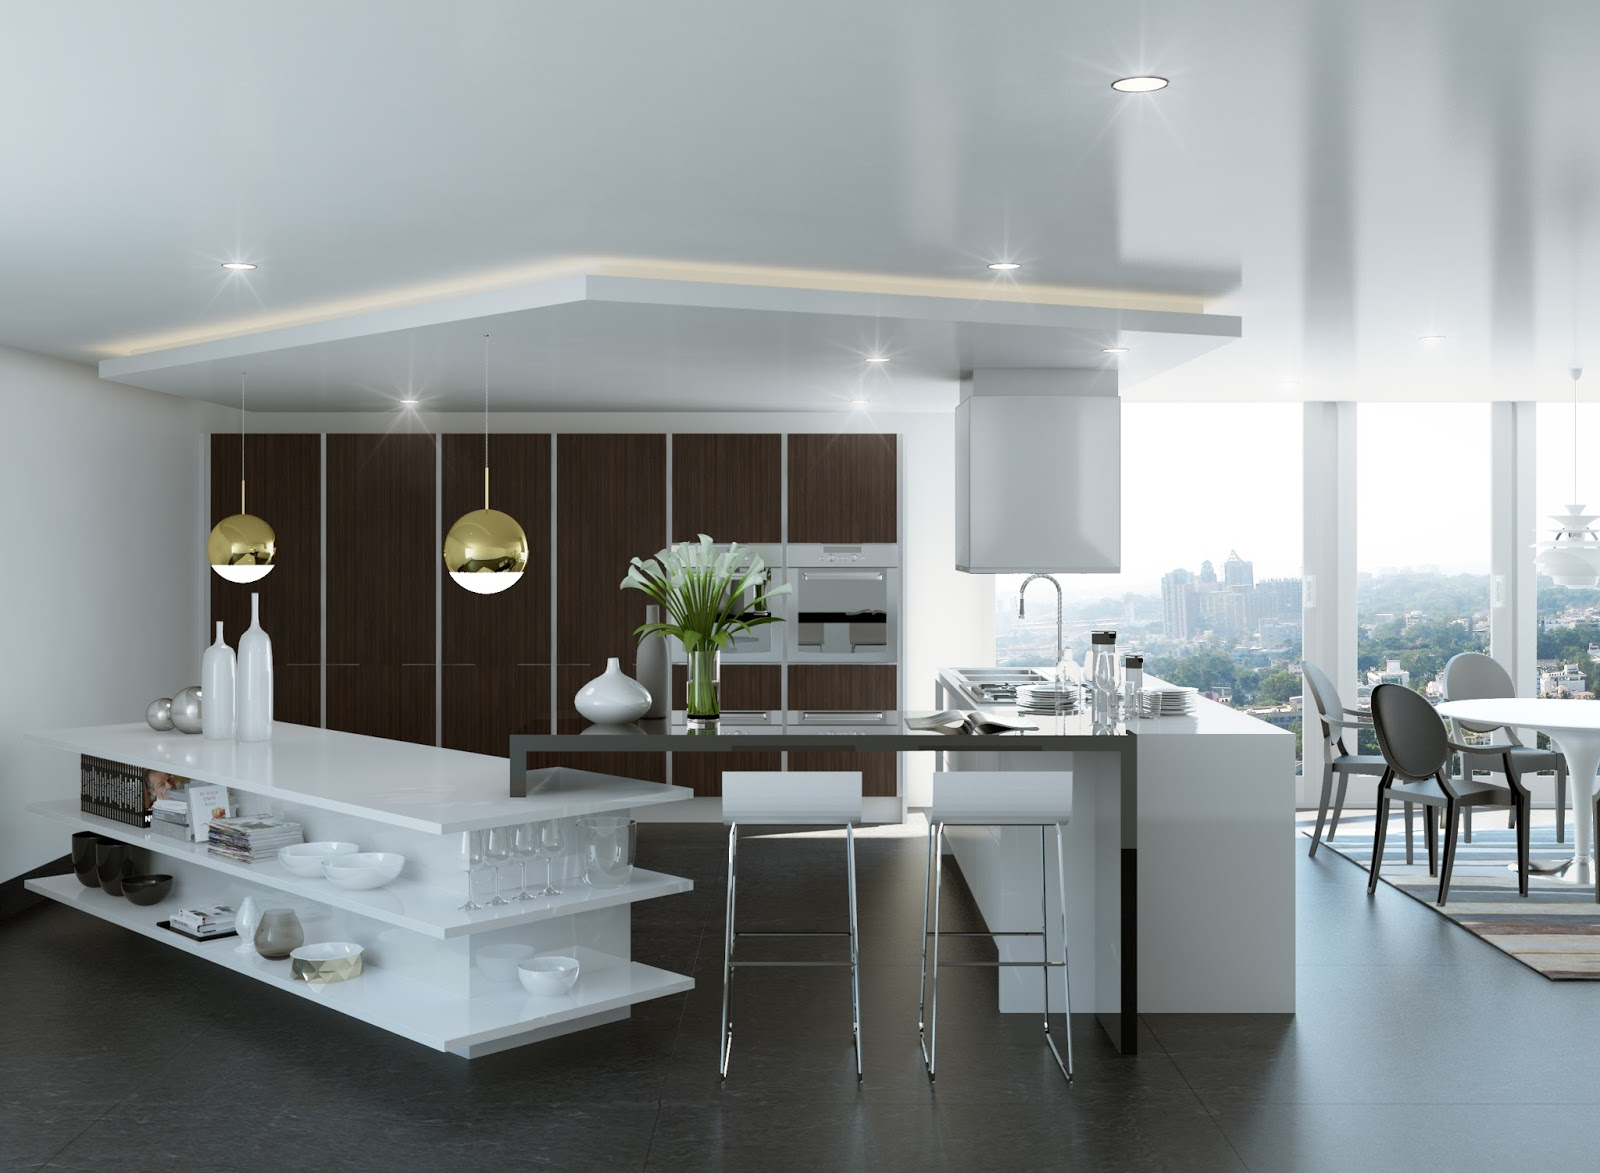 Atelier modular kitchens - W Rfel K Che Imported Modular Kitchen For Your Home